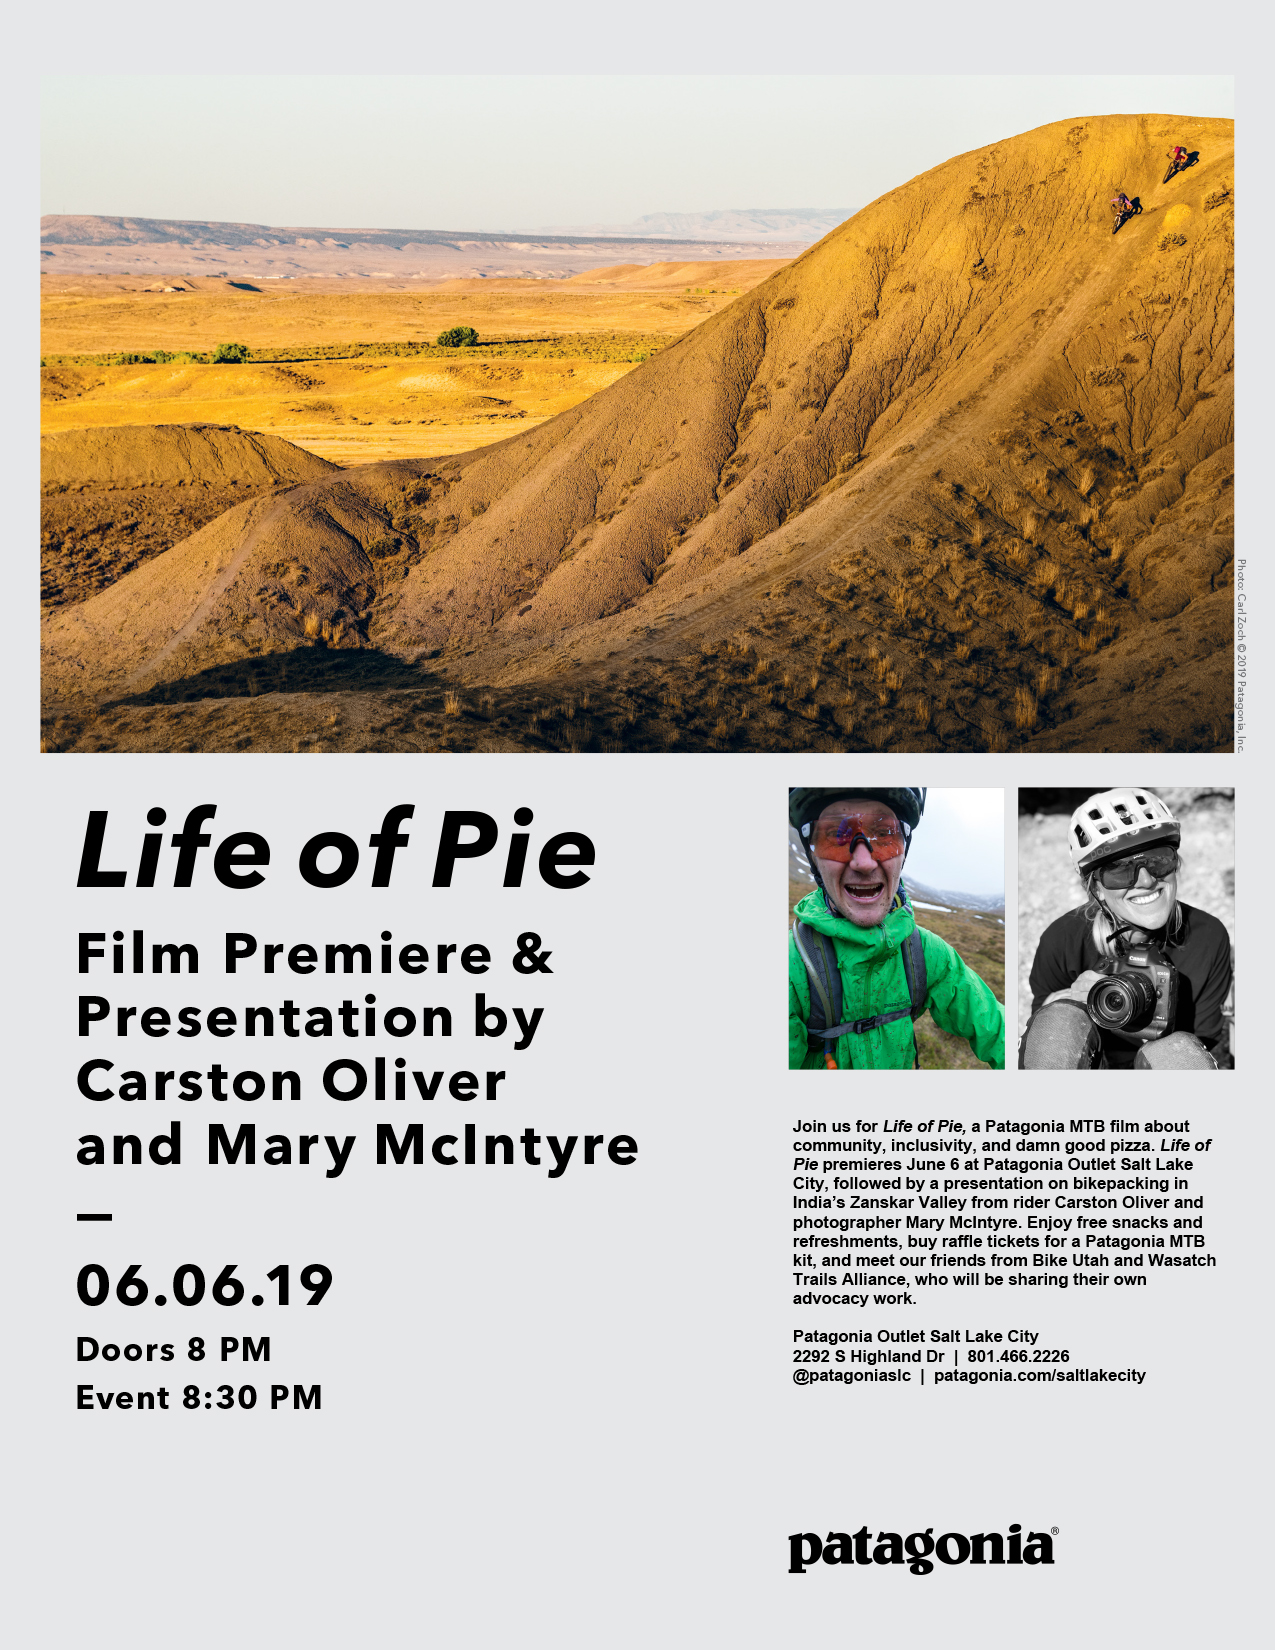 PAT_S19_MTB_LifeofPie-Tour-flyers_SLC.jpg